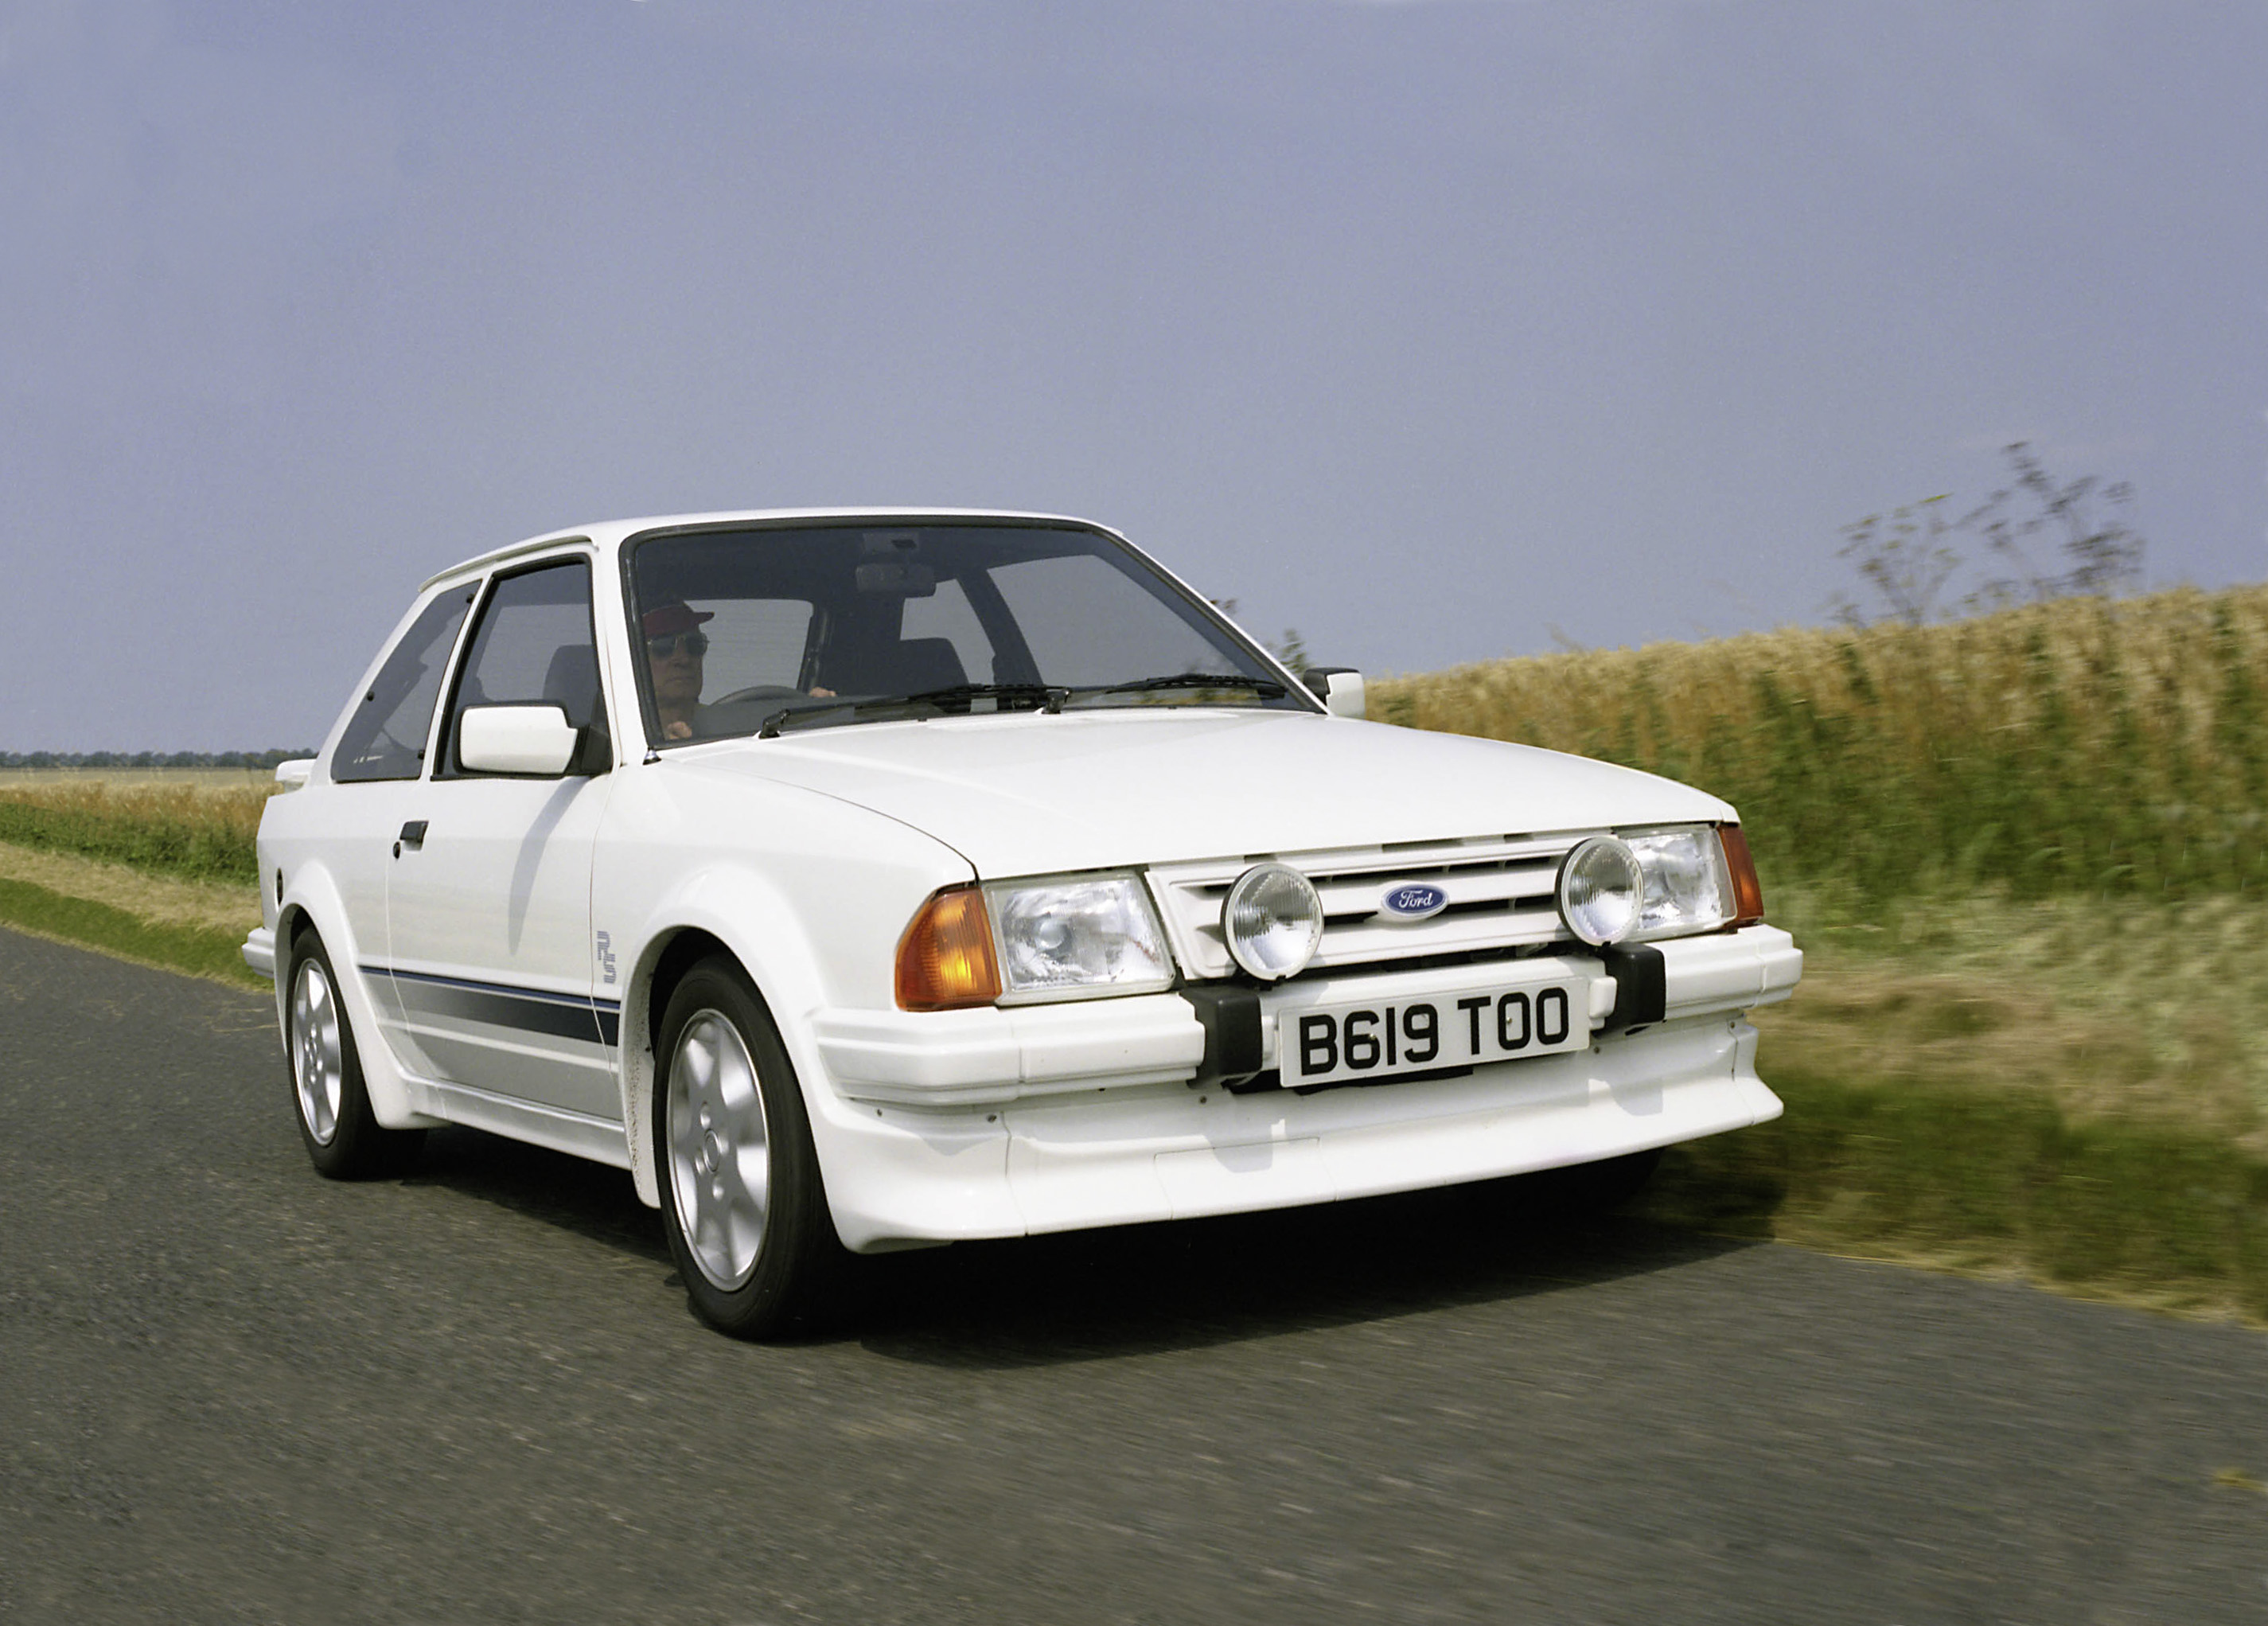 Ford Escort IV RS Turbo, Foto: Ford